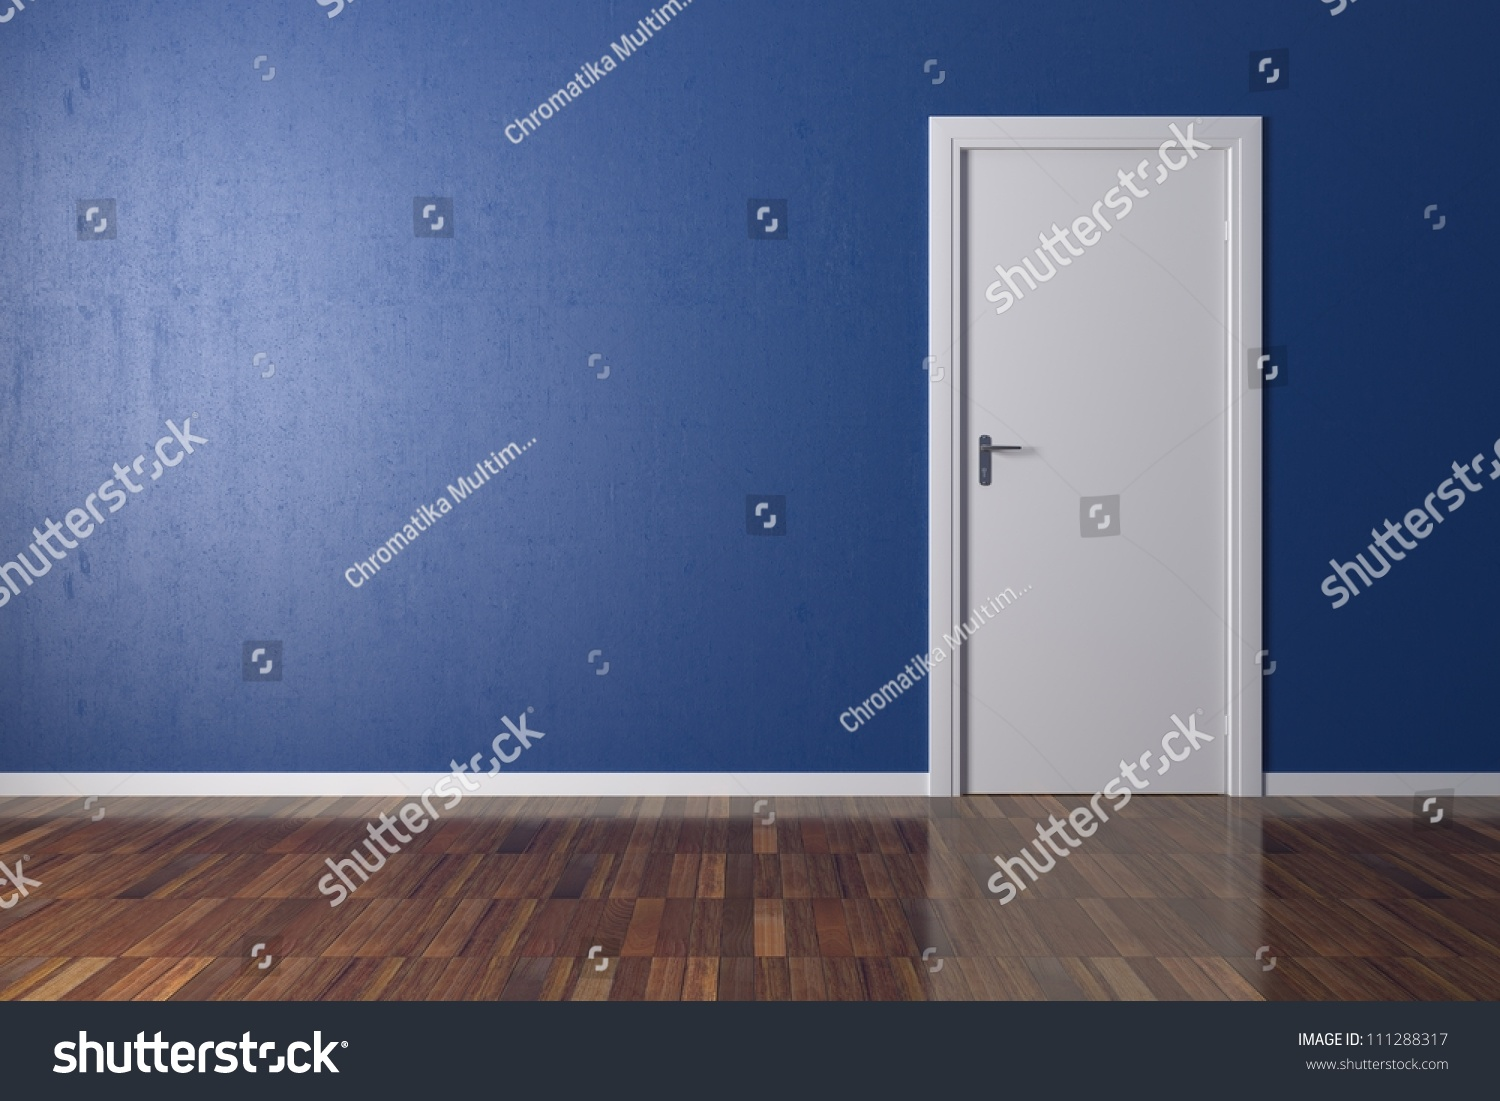 Background Blue Wall Parquet Floor White Stock Illustration ...